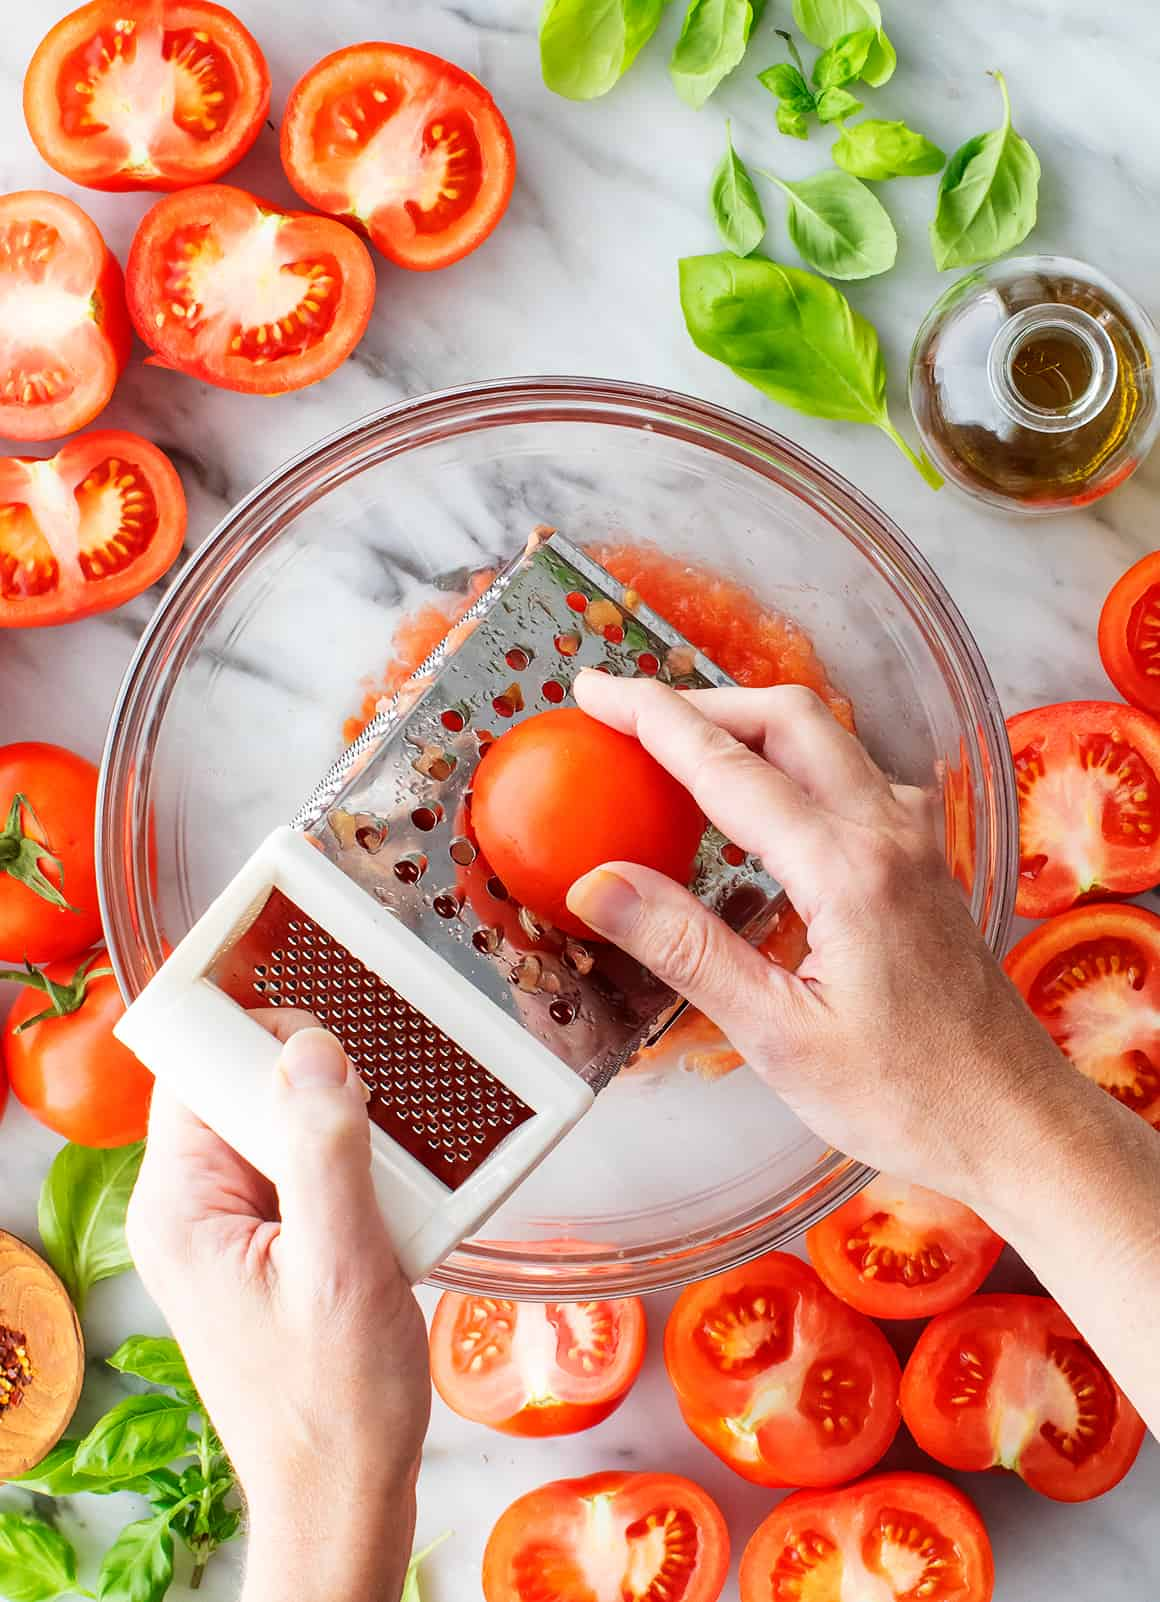 Hand grating halved tomato on a box grater over a large bowl